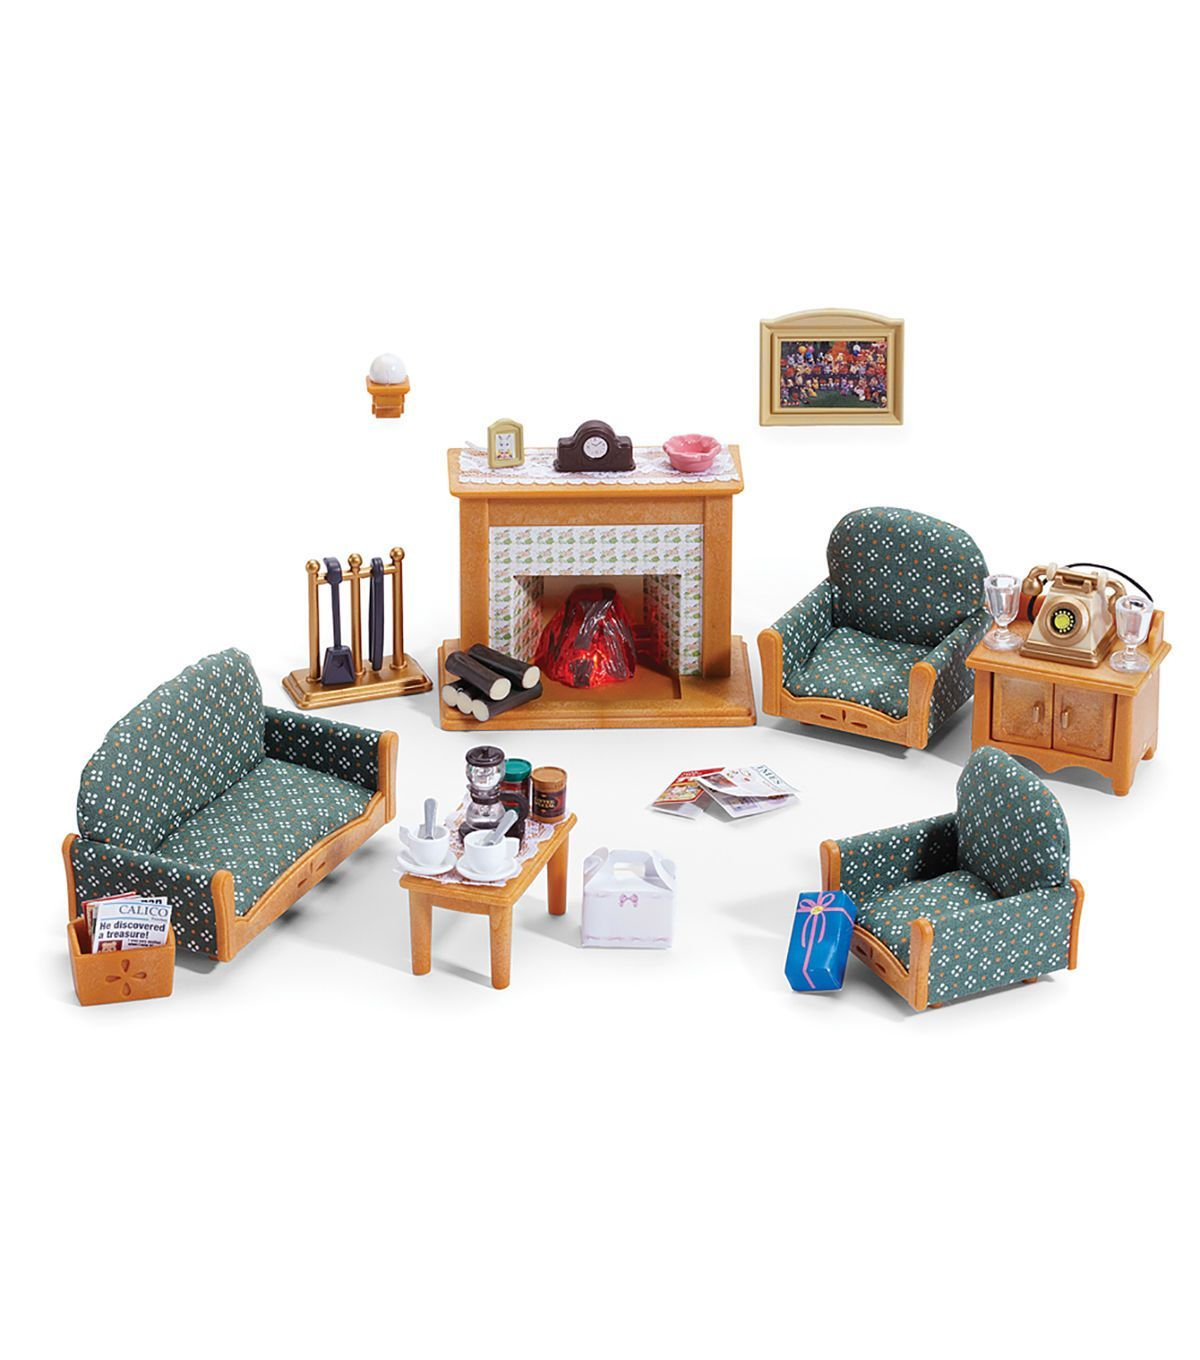 Calico Critters Deluxe Living Room Set Products Famlias pertaining to Sylvanian Families Cosy Living Room Set